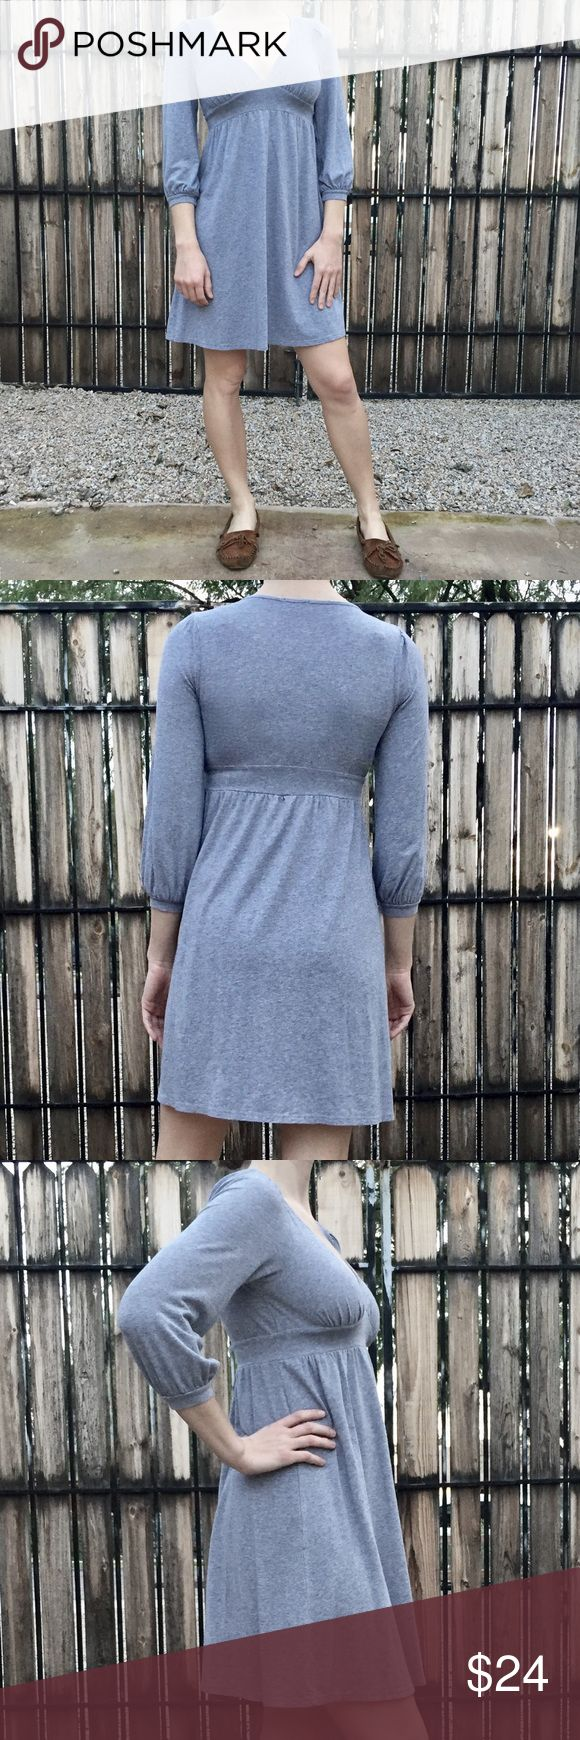 Ella Moss Gray Jersey Empire Waist Dress Ella Moss jersey knit heather gray dress. Empire waist with deep v neckline. Super comfy and casual. Great with a pair of sandals in the summer or wear with leggings and layer for colder weather. Size S, excellent used condition. Ella Moss Dresses